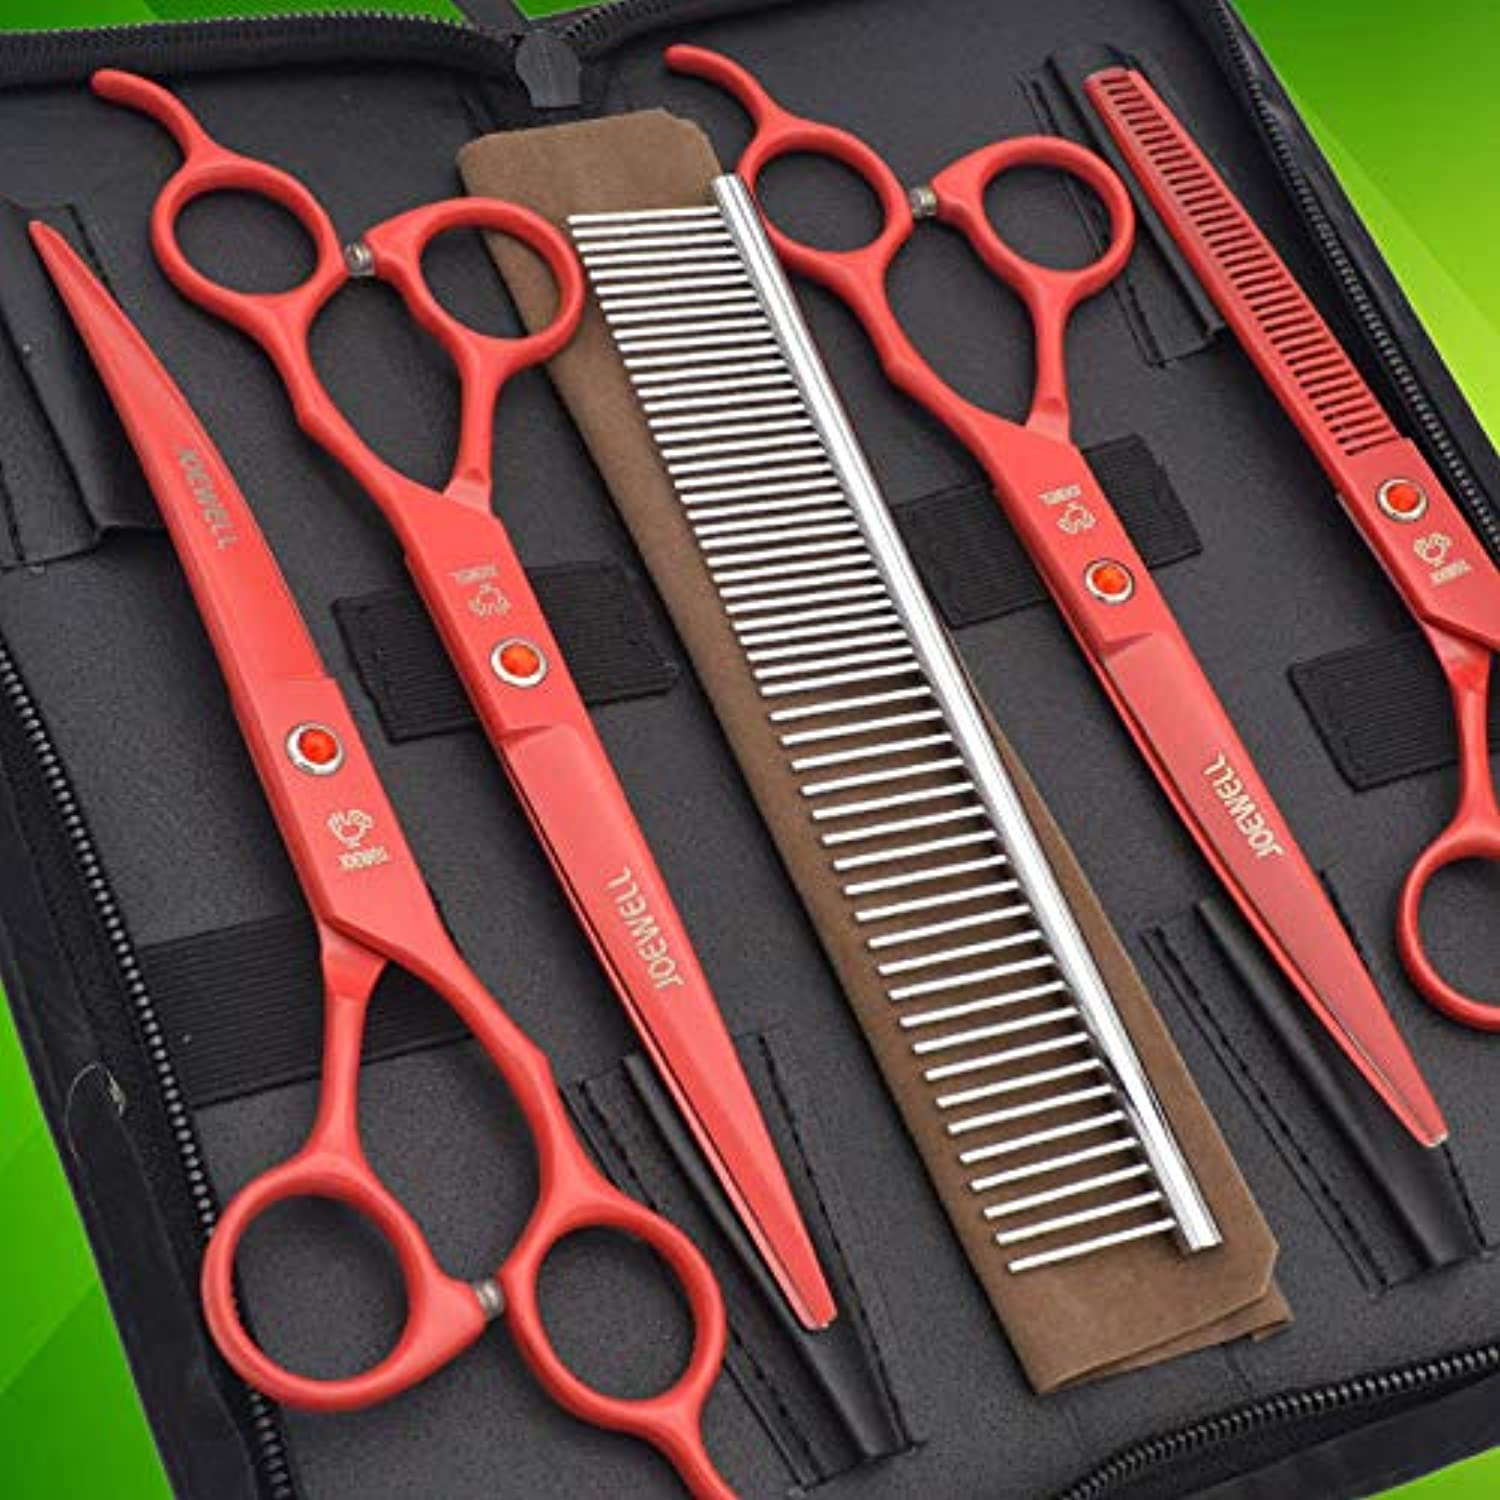 5 pcs Pet Scissors Set, 7 inches Pet Stainless Steel Curved Thinning Shears Grooming Scissors Sets with Grooming Comb and Scissor Bag